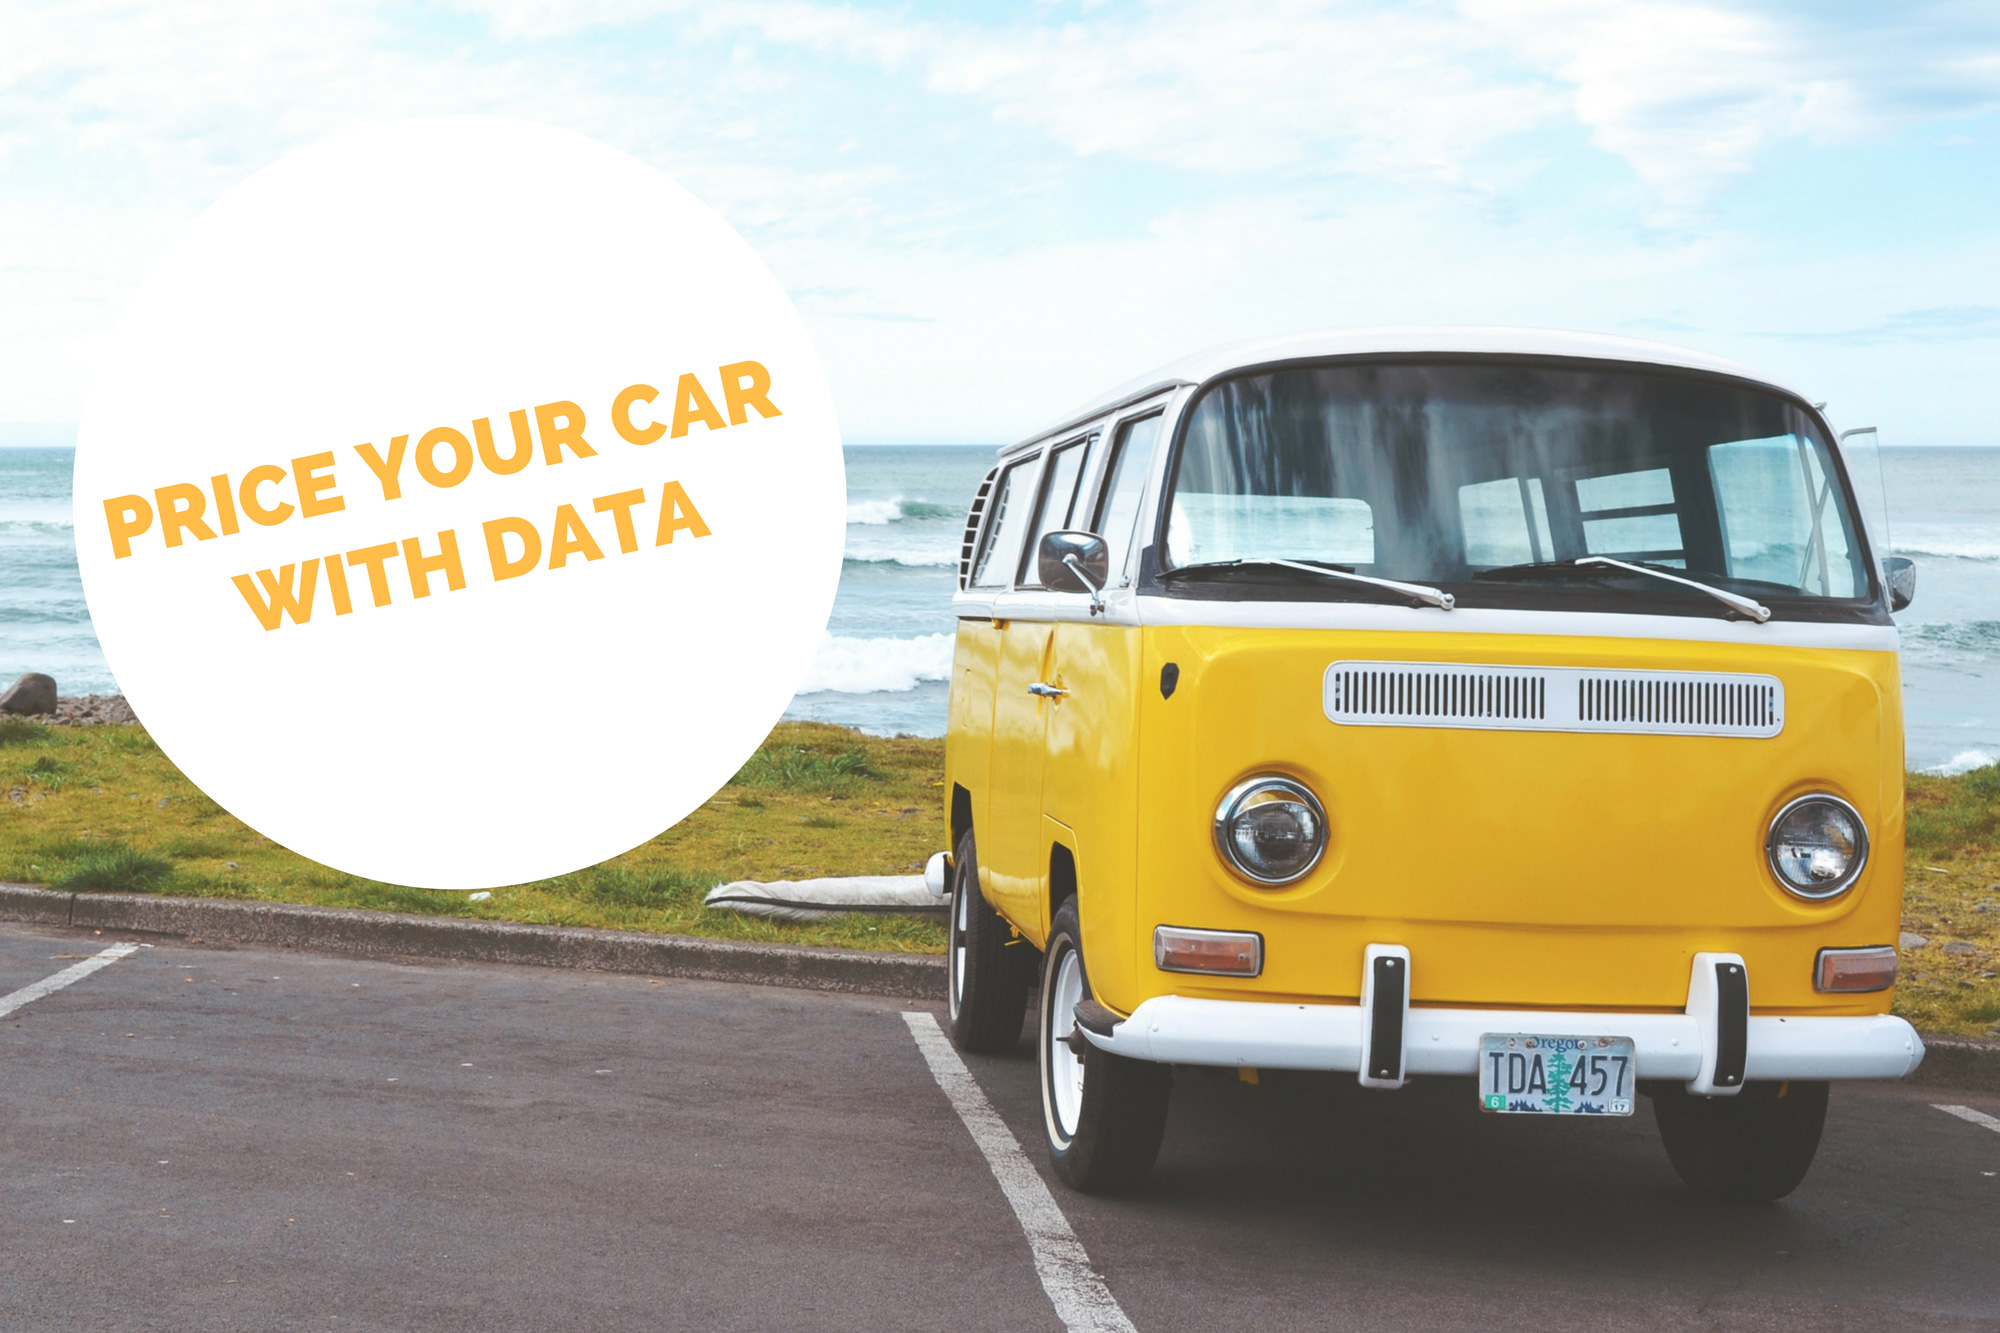 Price your car with data | Schibsted